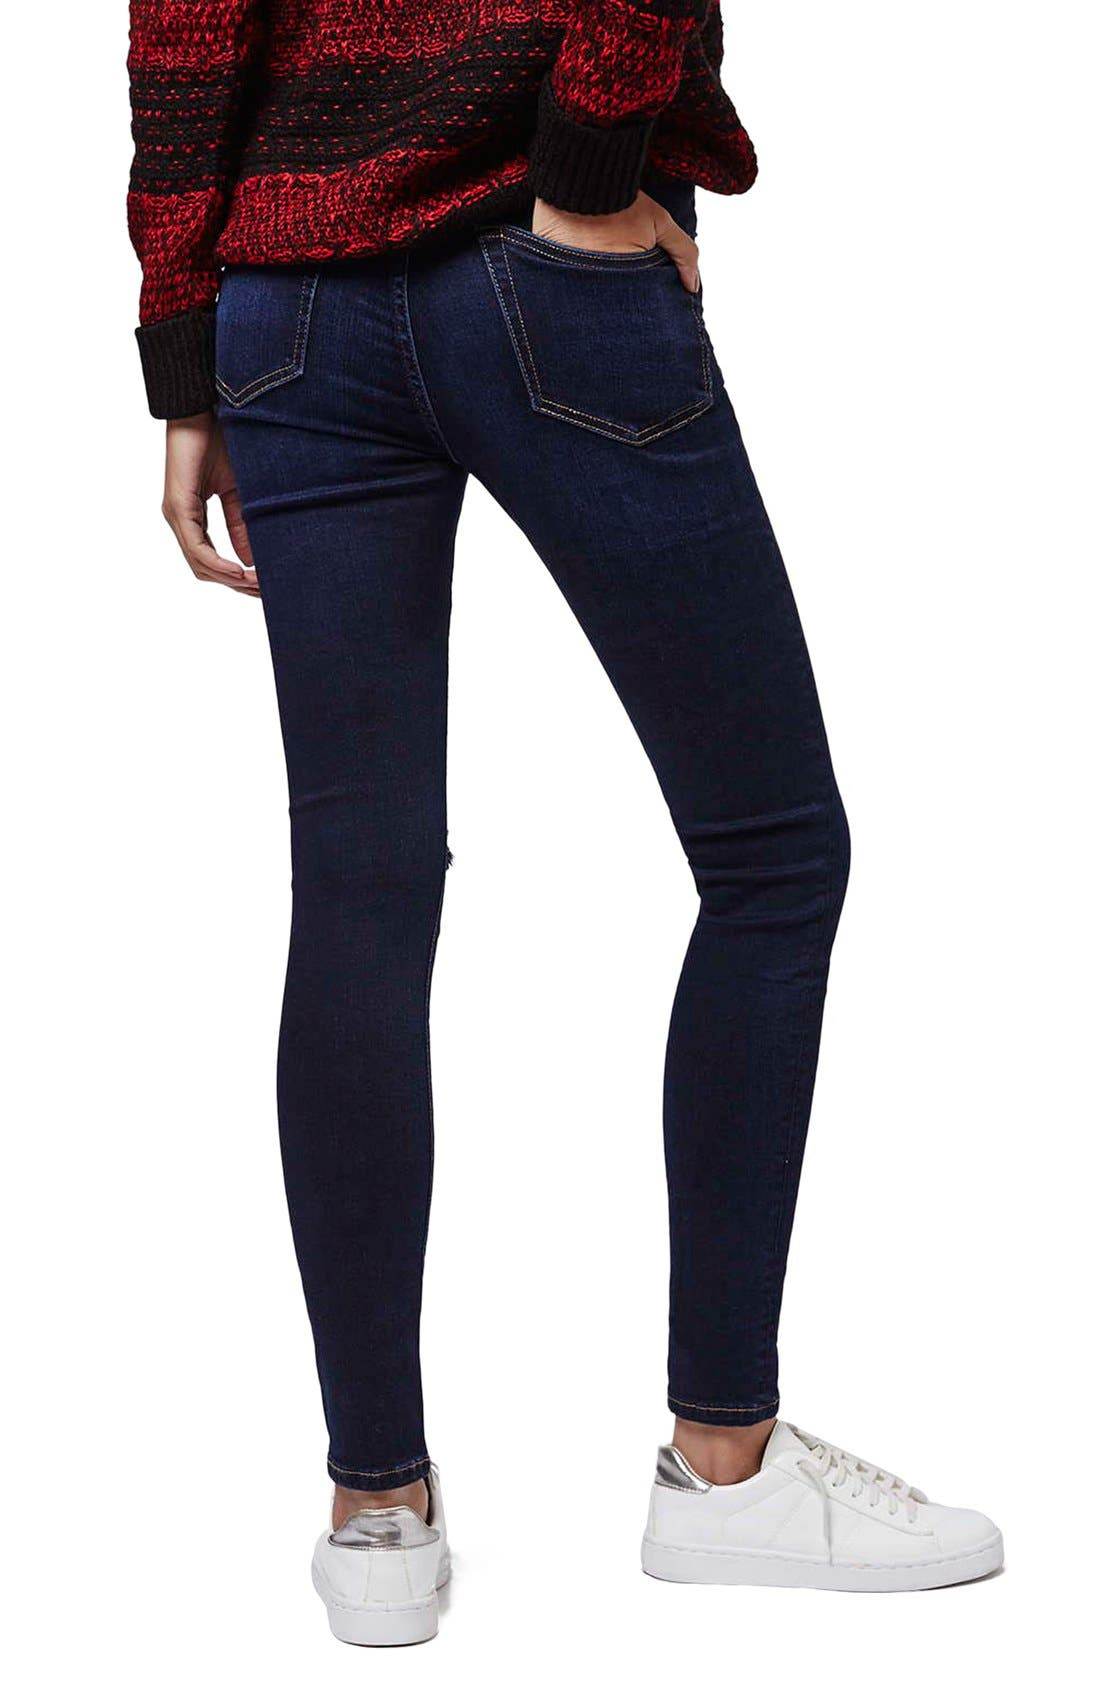 Alternate Image 3  - Topshop Moto 'Jamie' Ripped Skinny Jeans (Navy Blue)